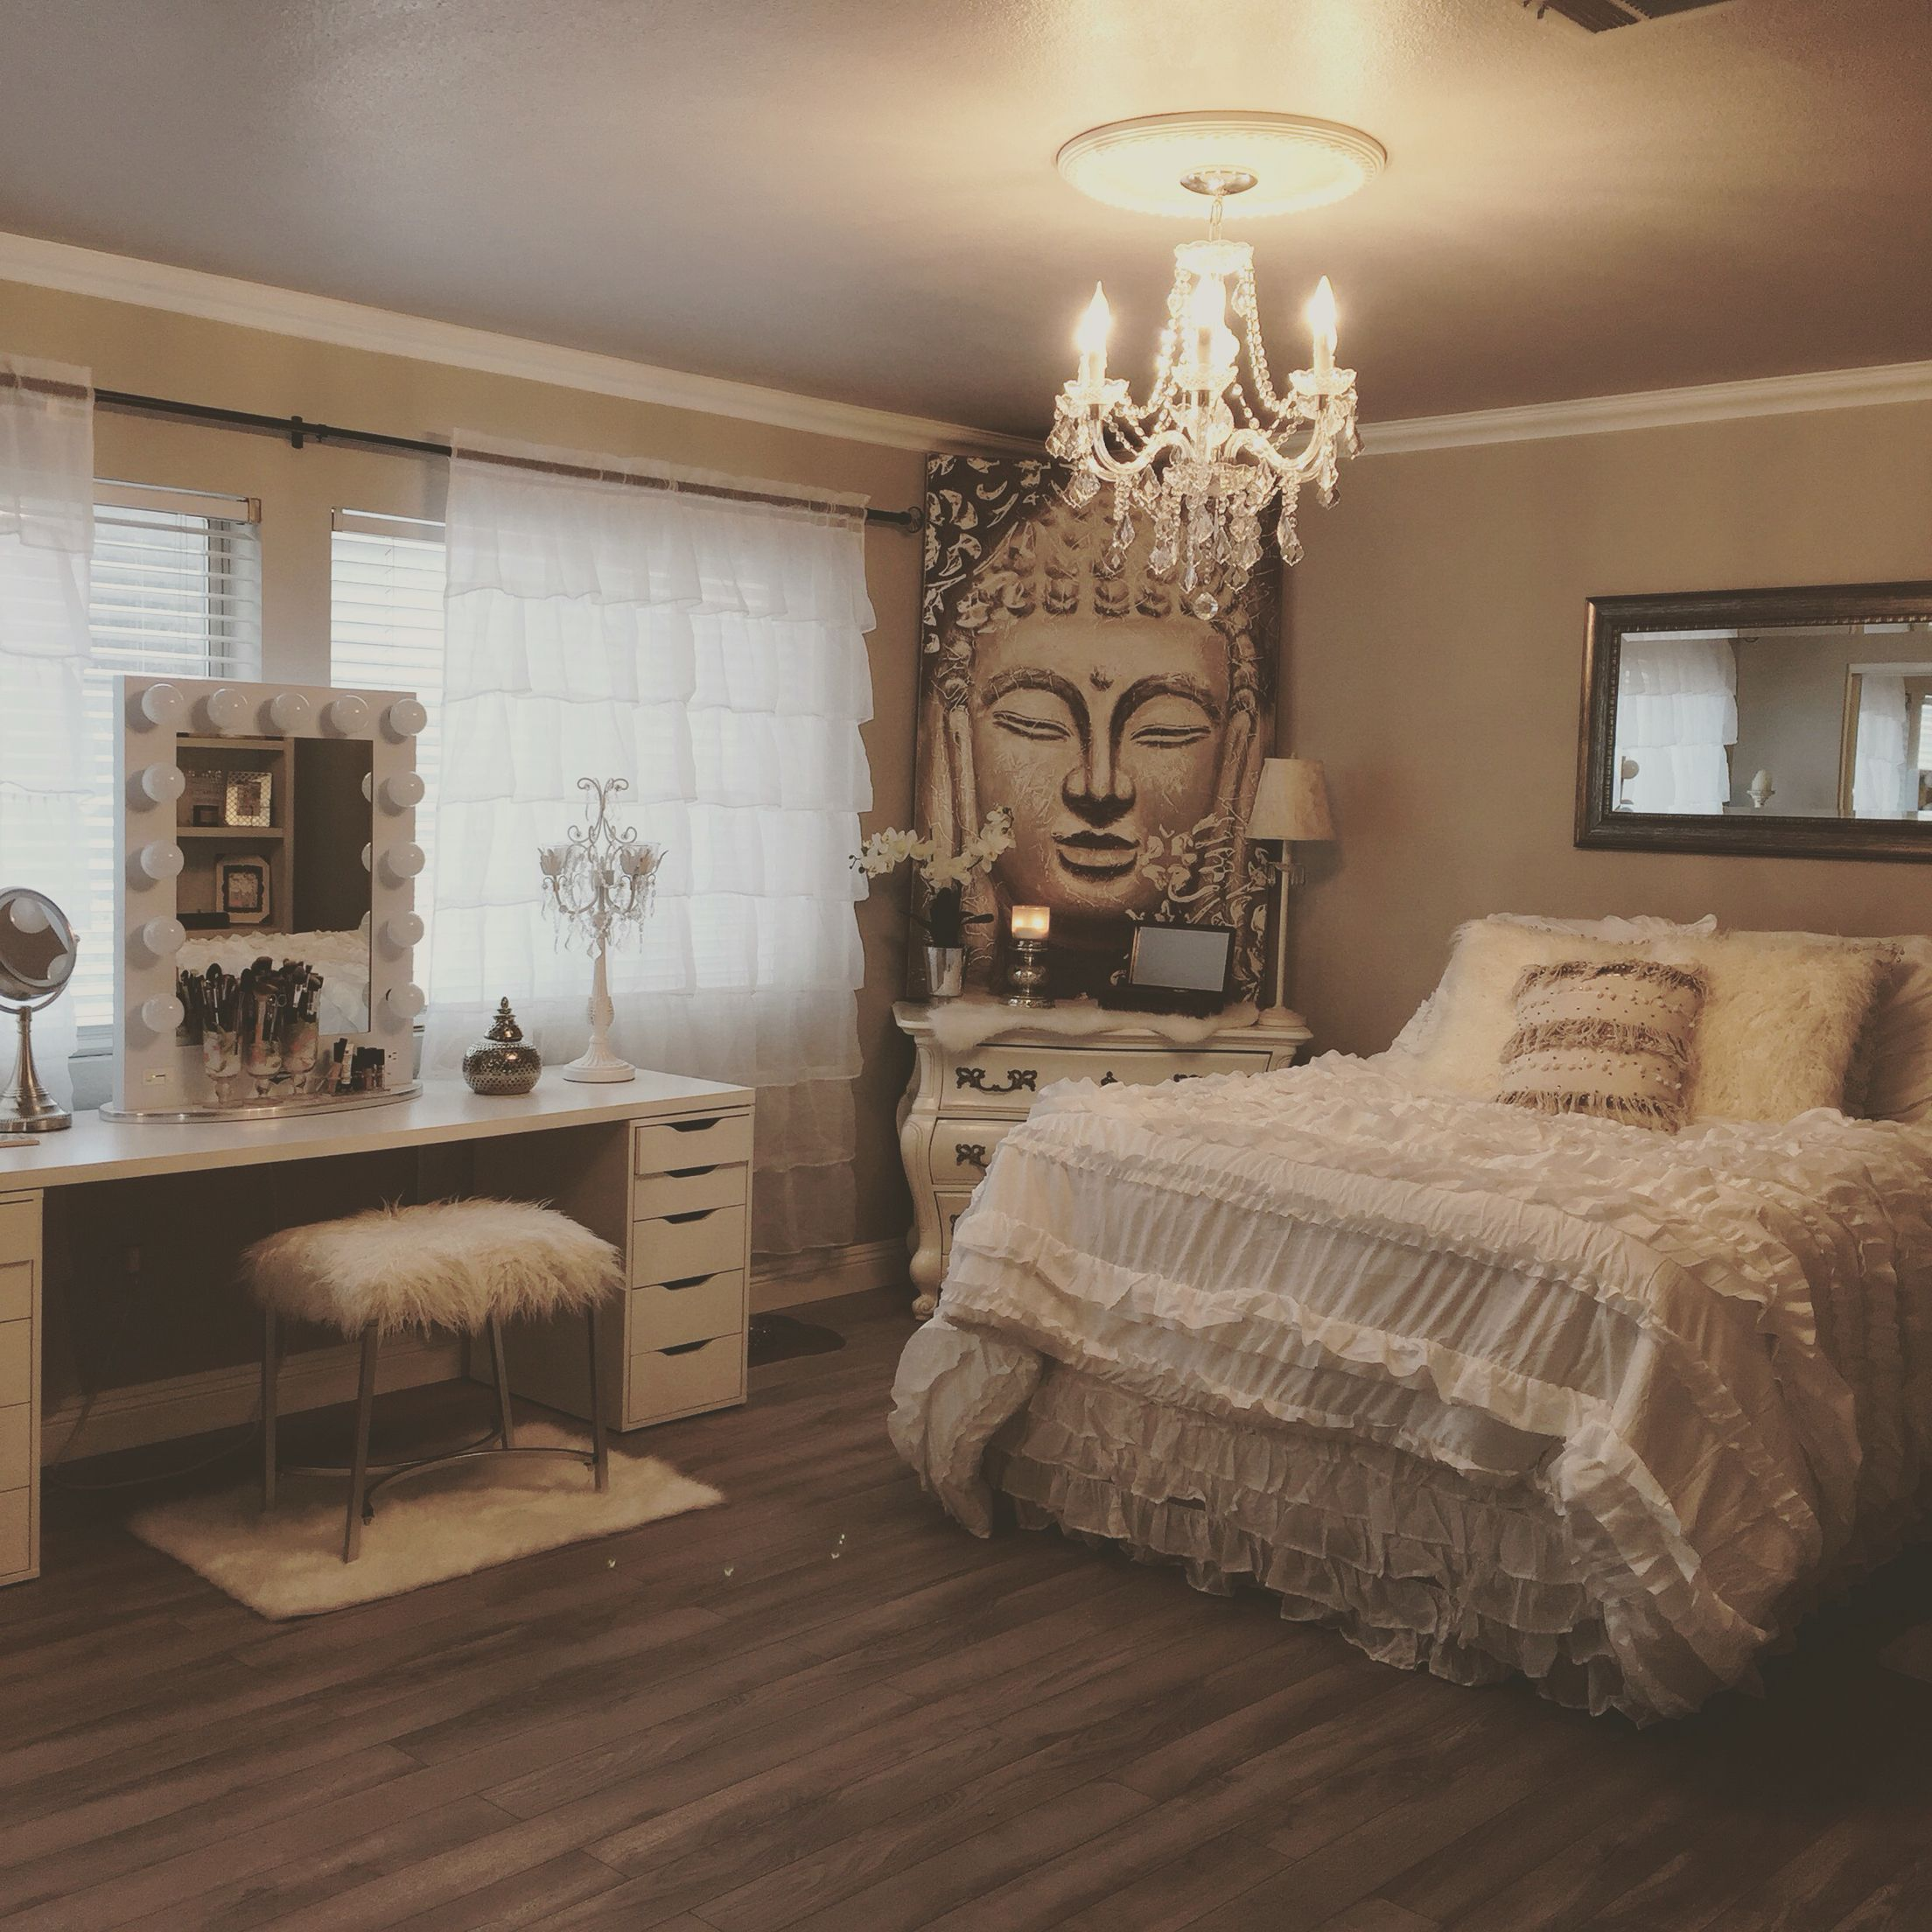 Shabby chic meets zen glam my new bedroom pinterest for Bedroom decorative accessories